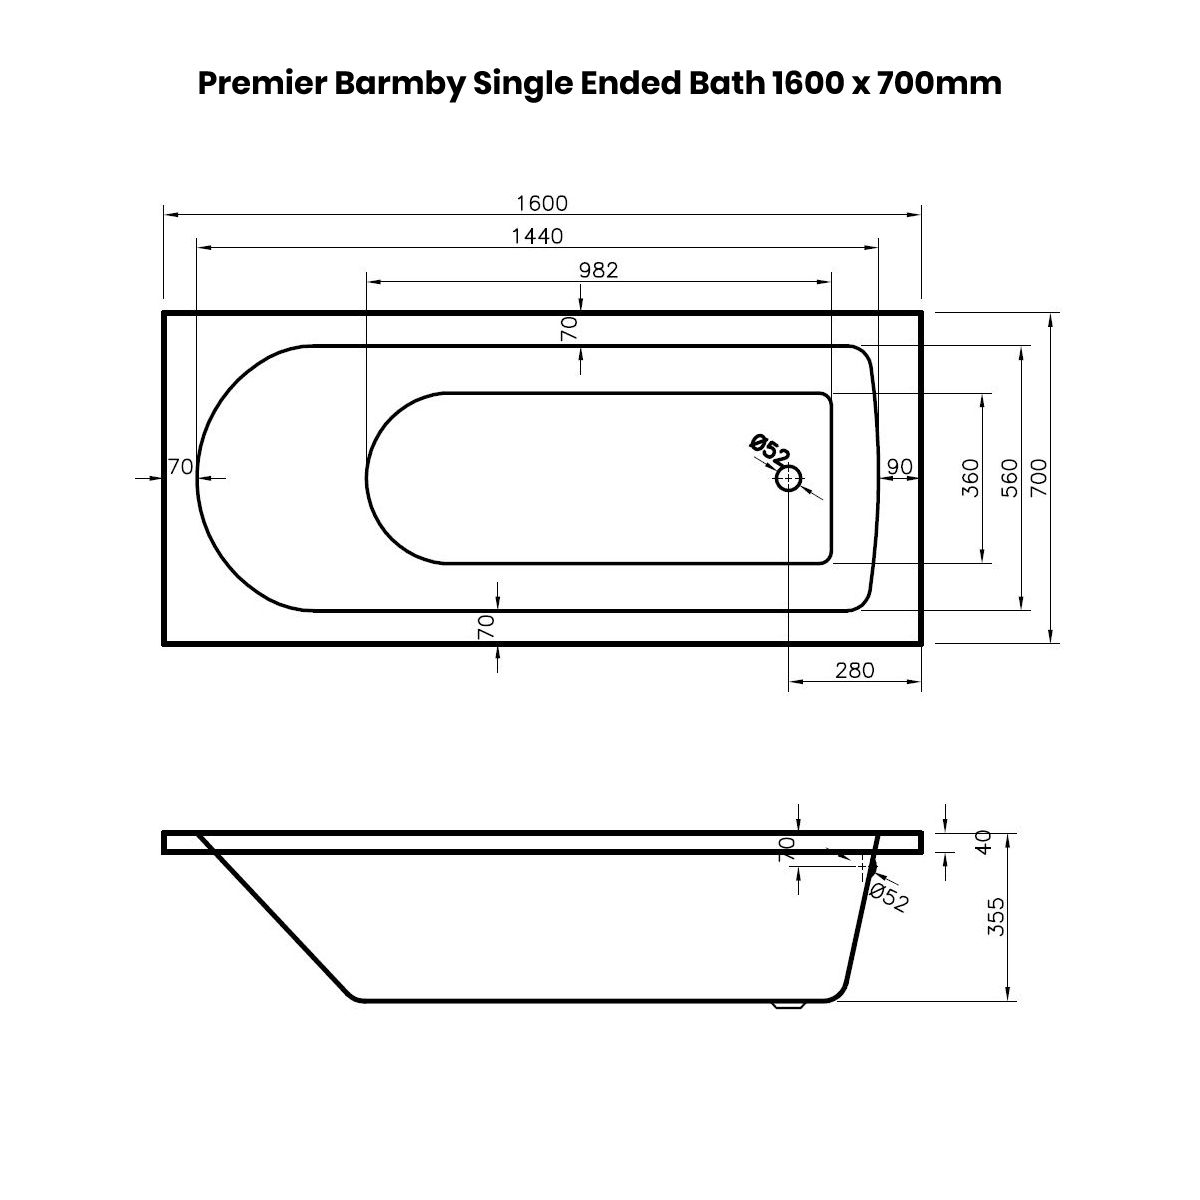 Premier Barmby Single Ended Bath 1600 x 700mm Dimensions